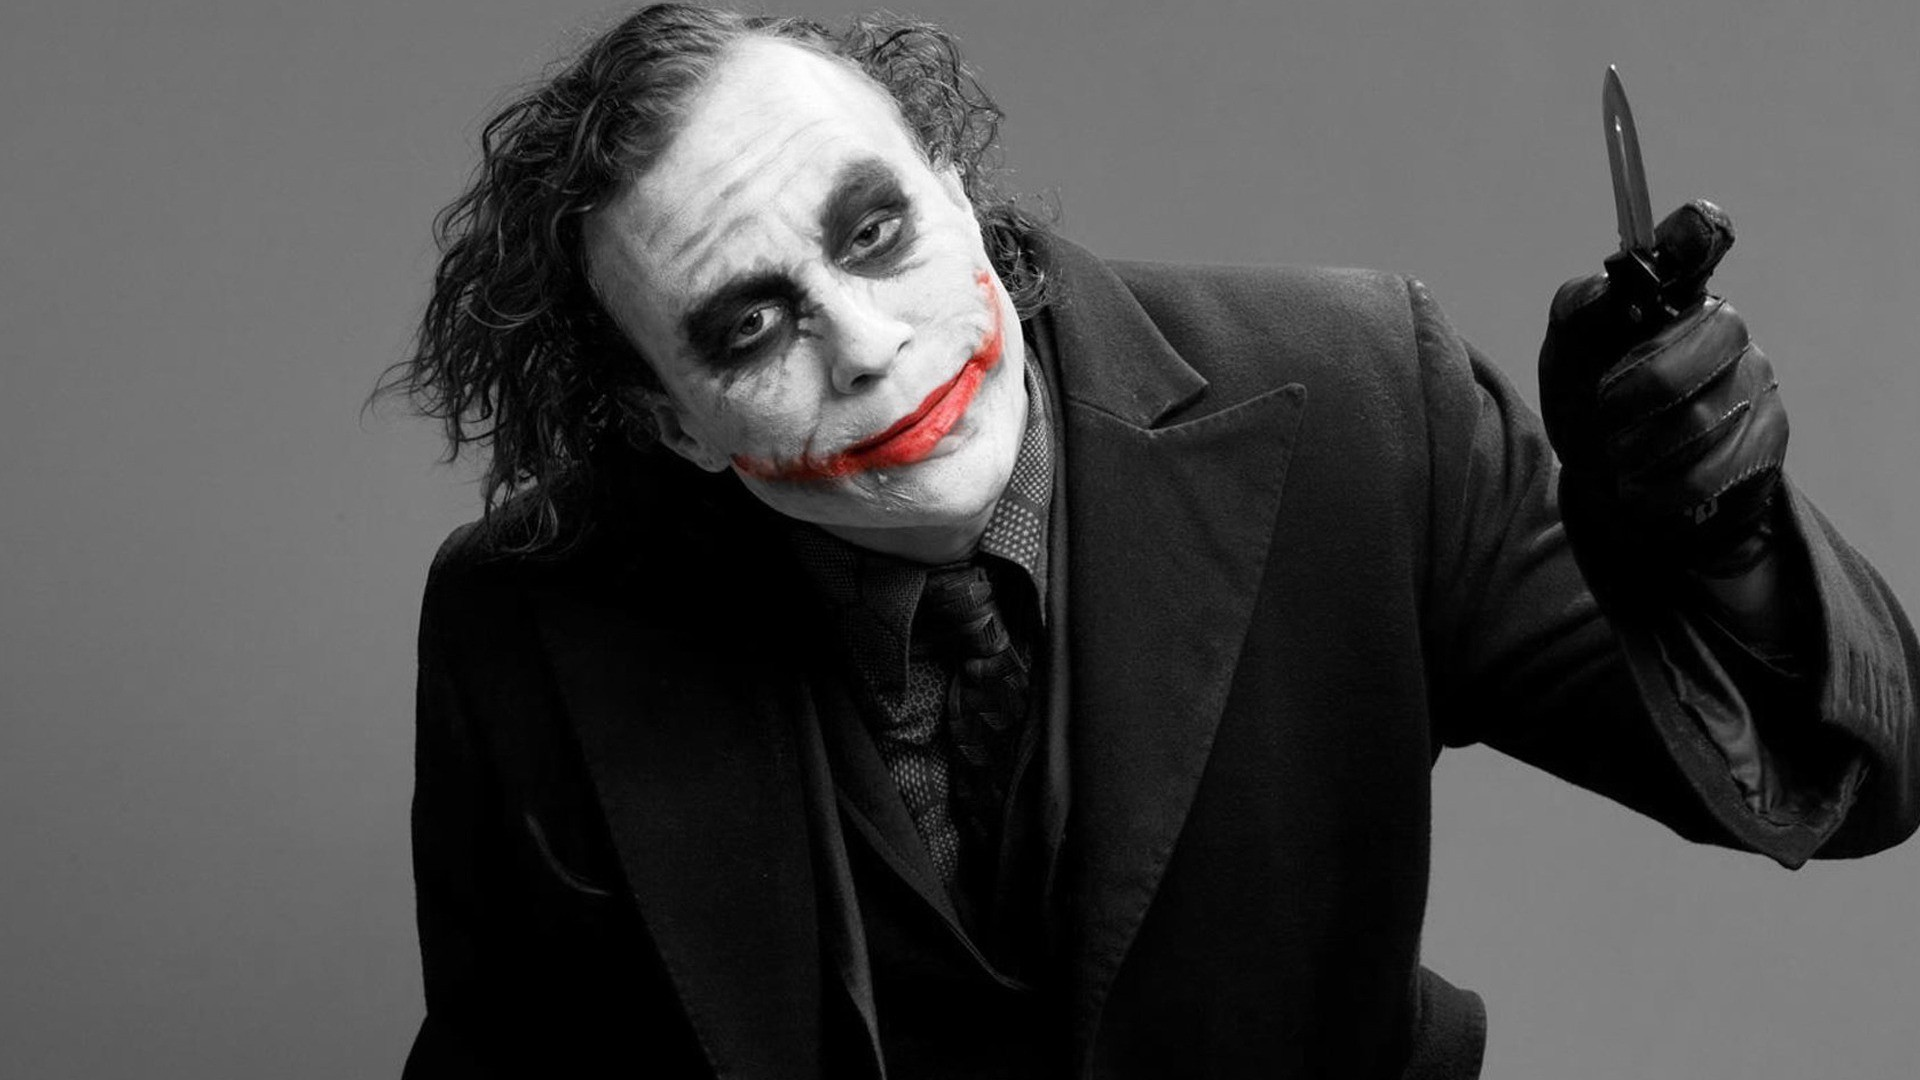 Broken Heart Quotes Wallpapers For Mobile Heath Ledger Wallpapers 183 ① Wallpapertag